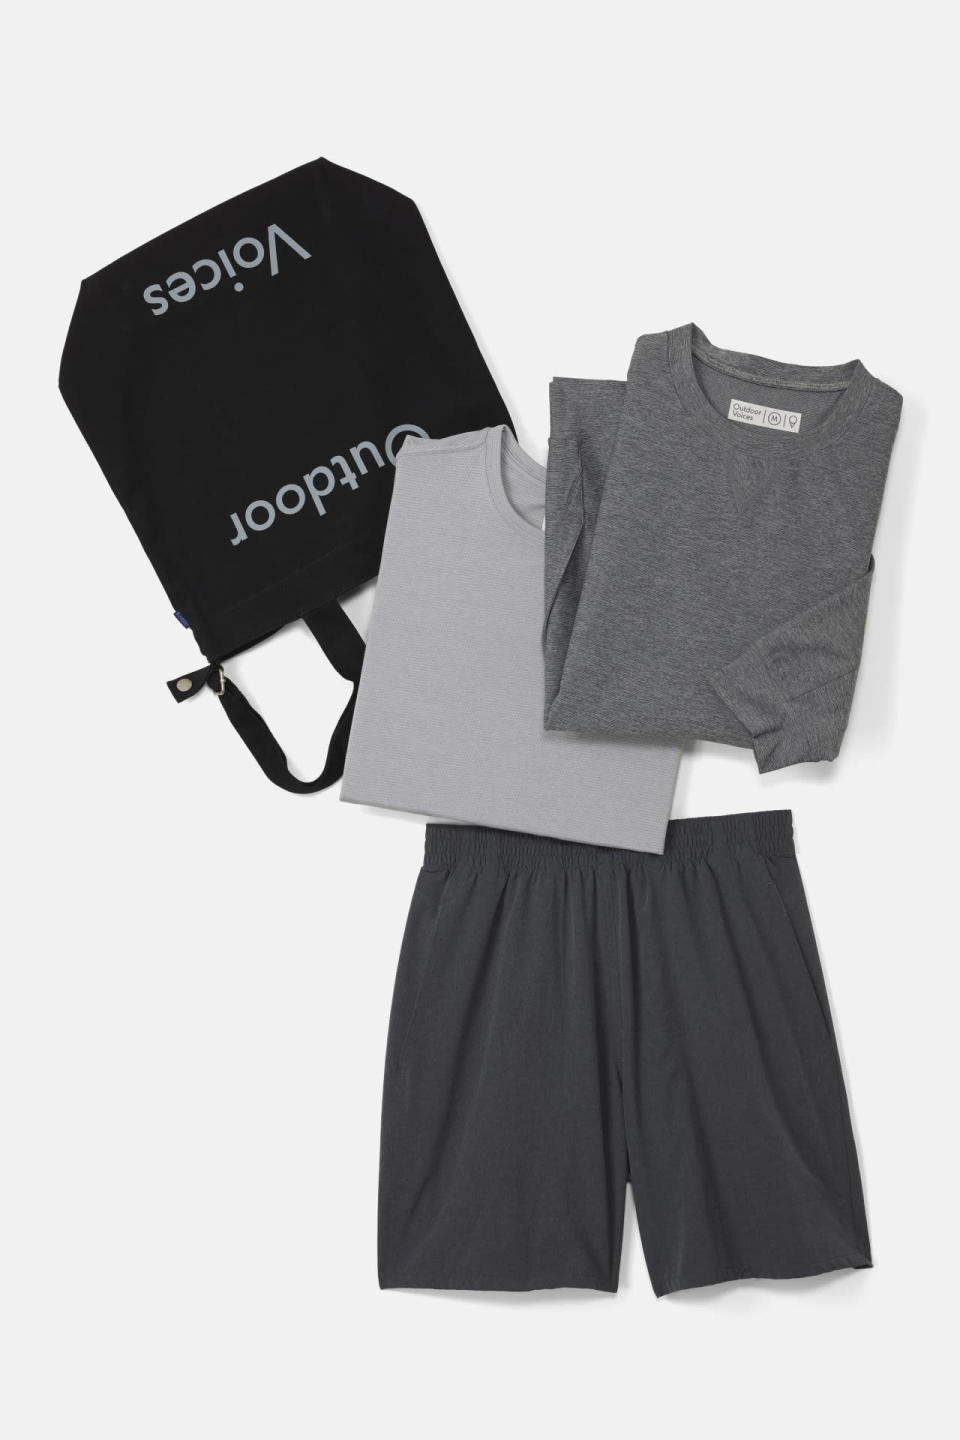 "<p>This handsome activewear kit contains all the elements a man needs to feel comfortable — and look stylish — at yoga: a tee, shorts, crewneck, and a bag to hold them all together.<br></p><p>$200 at <a href=""https://www.outdoorvoices.com/products/man-3-piece-kit?variant=8612914885"" rel=""nofollow noopener"" target=""_blank"" data-ylk=""slk:Outdoor Voices"" class=""link rapid-noclick-resp"">Outdoor Voices</a></p>"